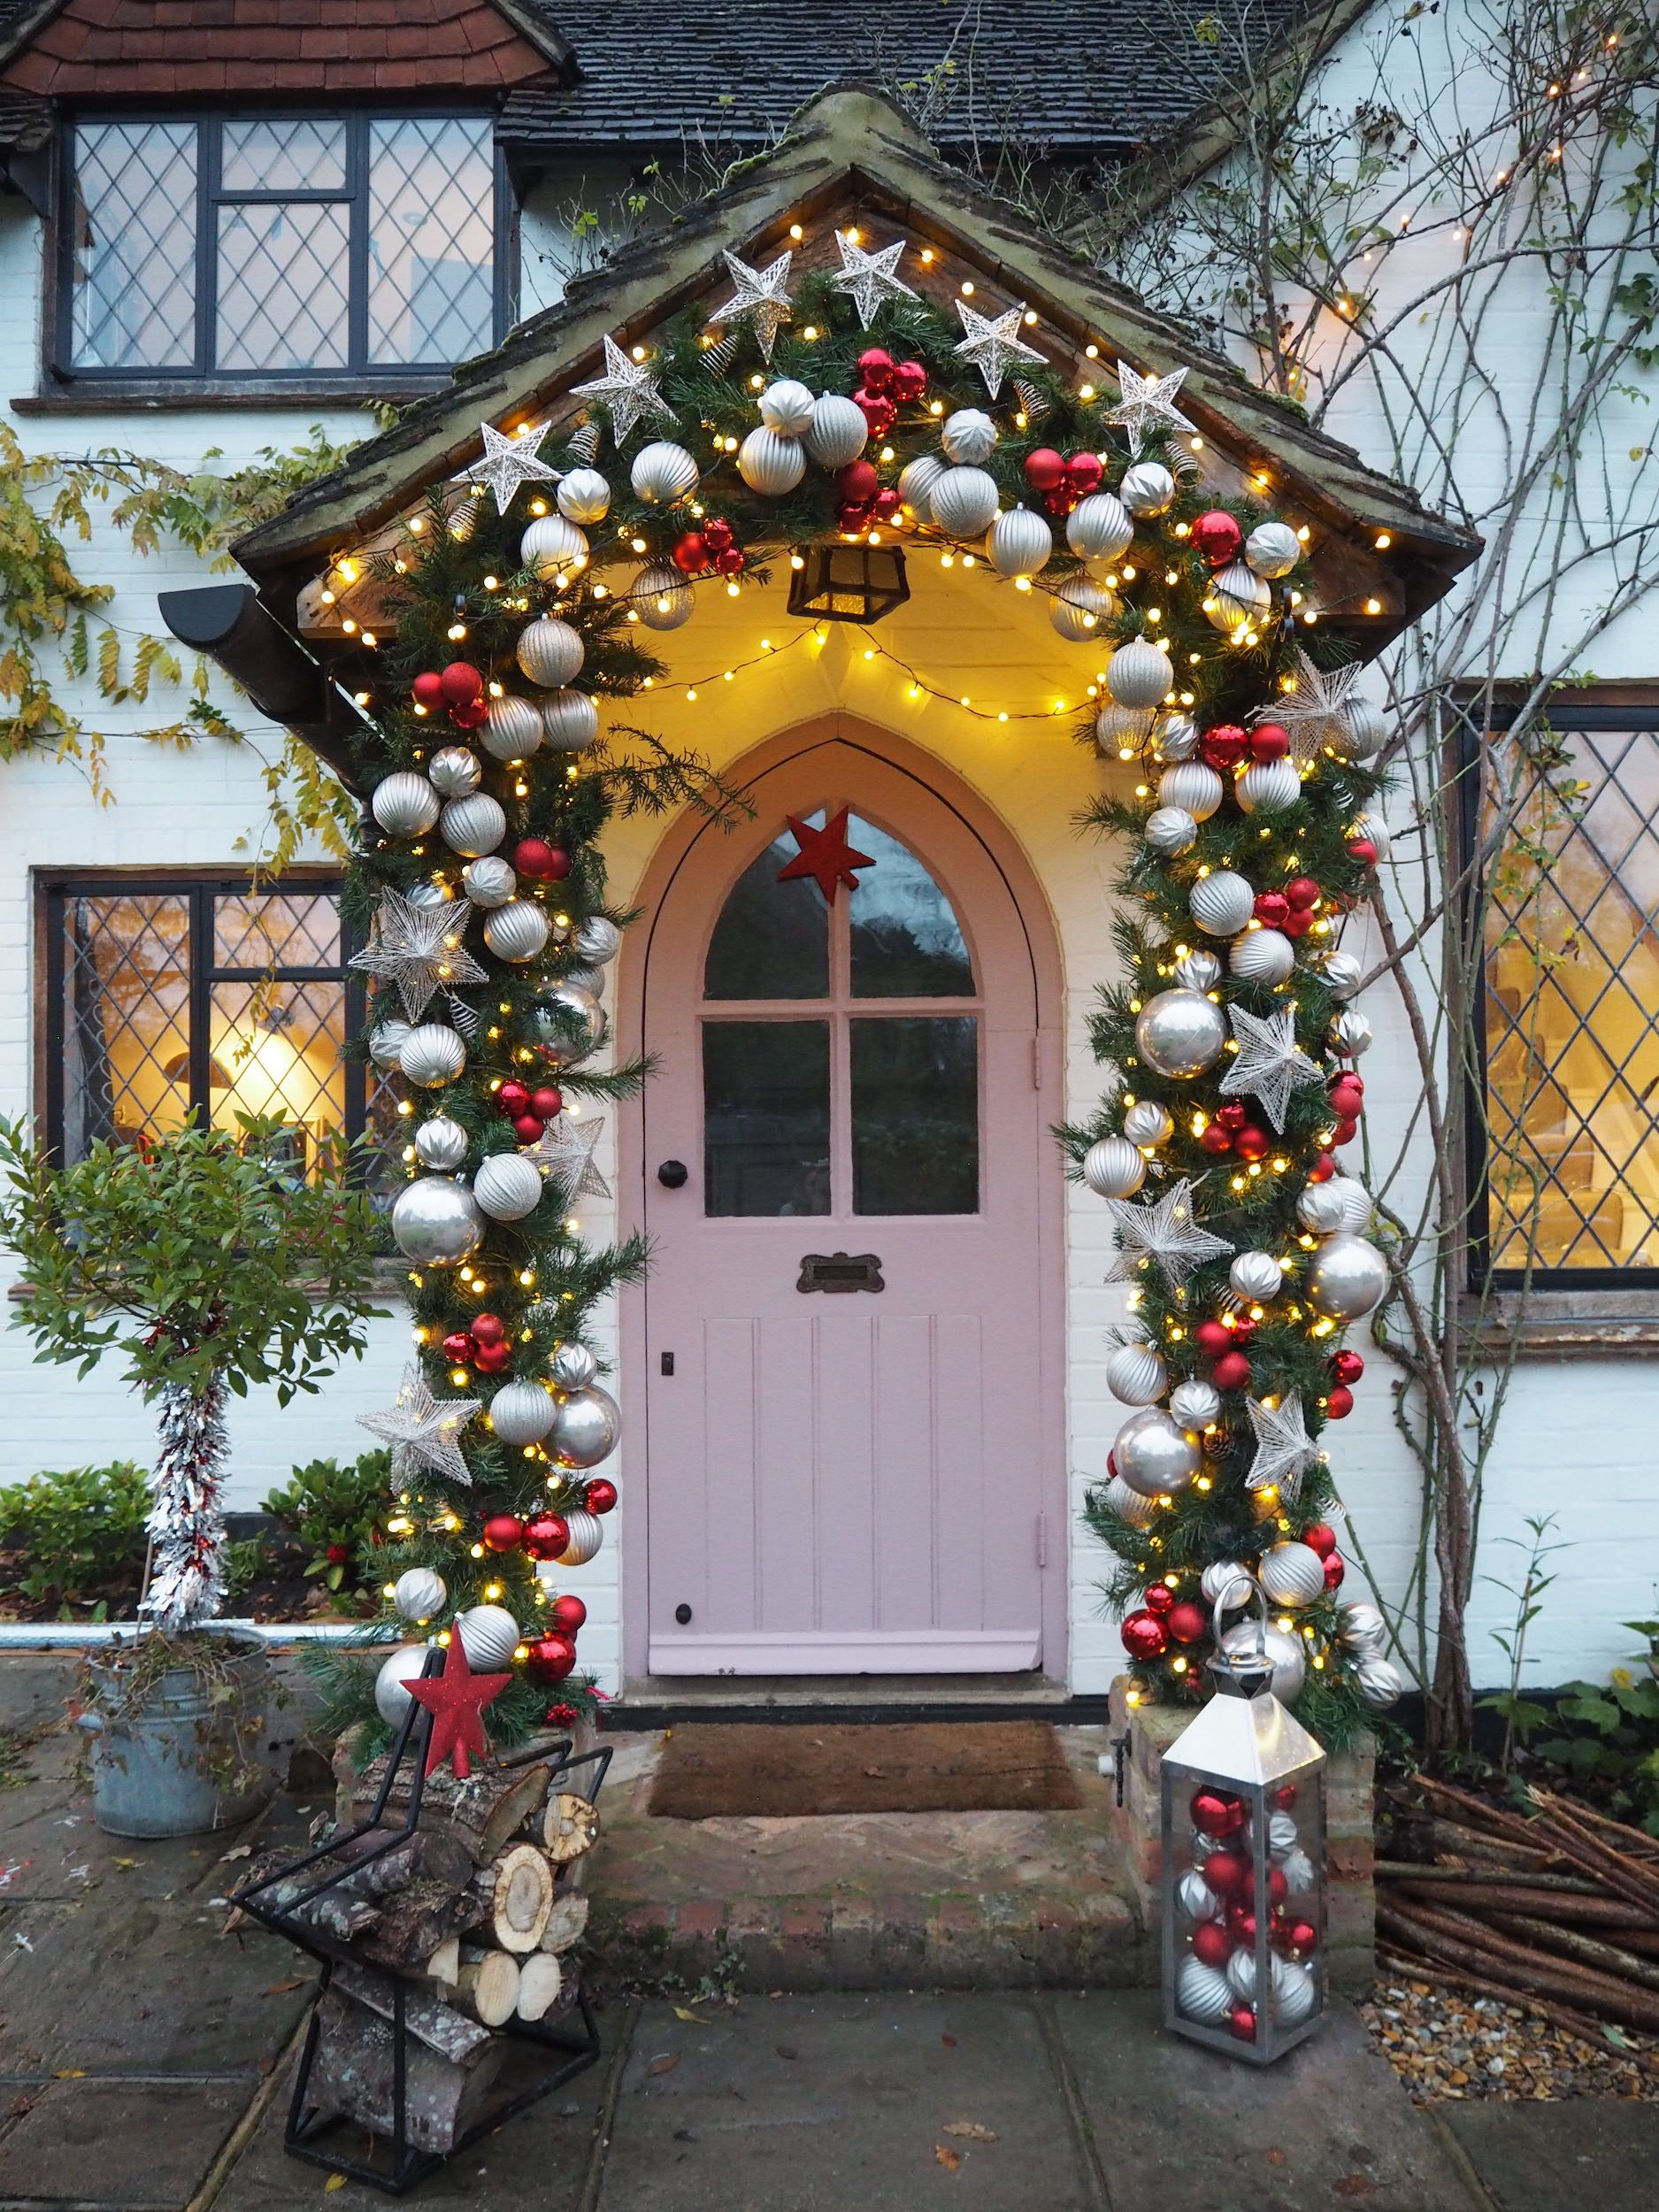 How to create an Instagrammable front door display for Christmas